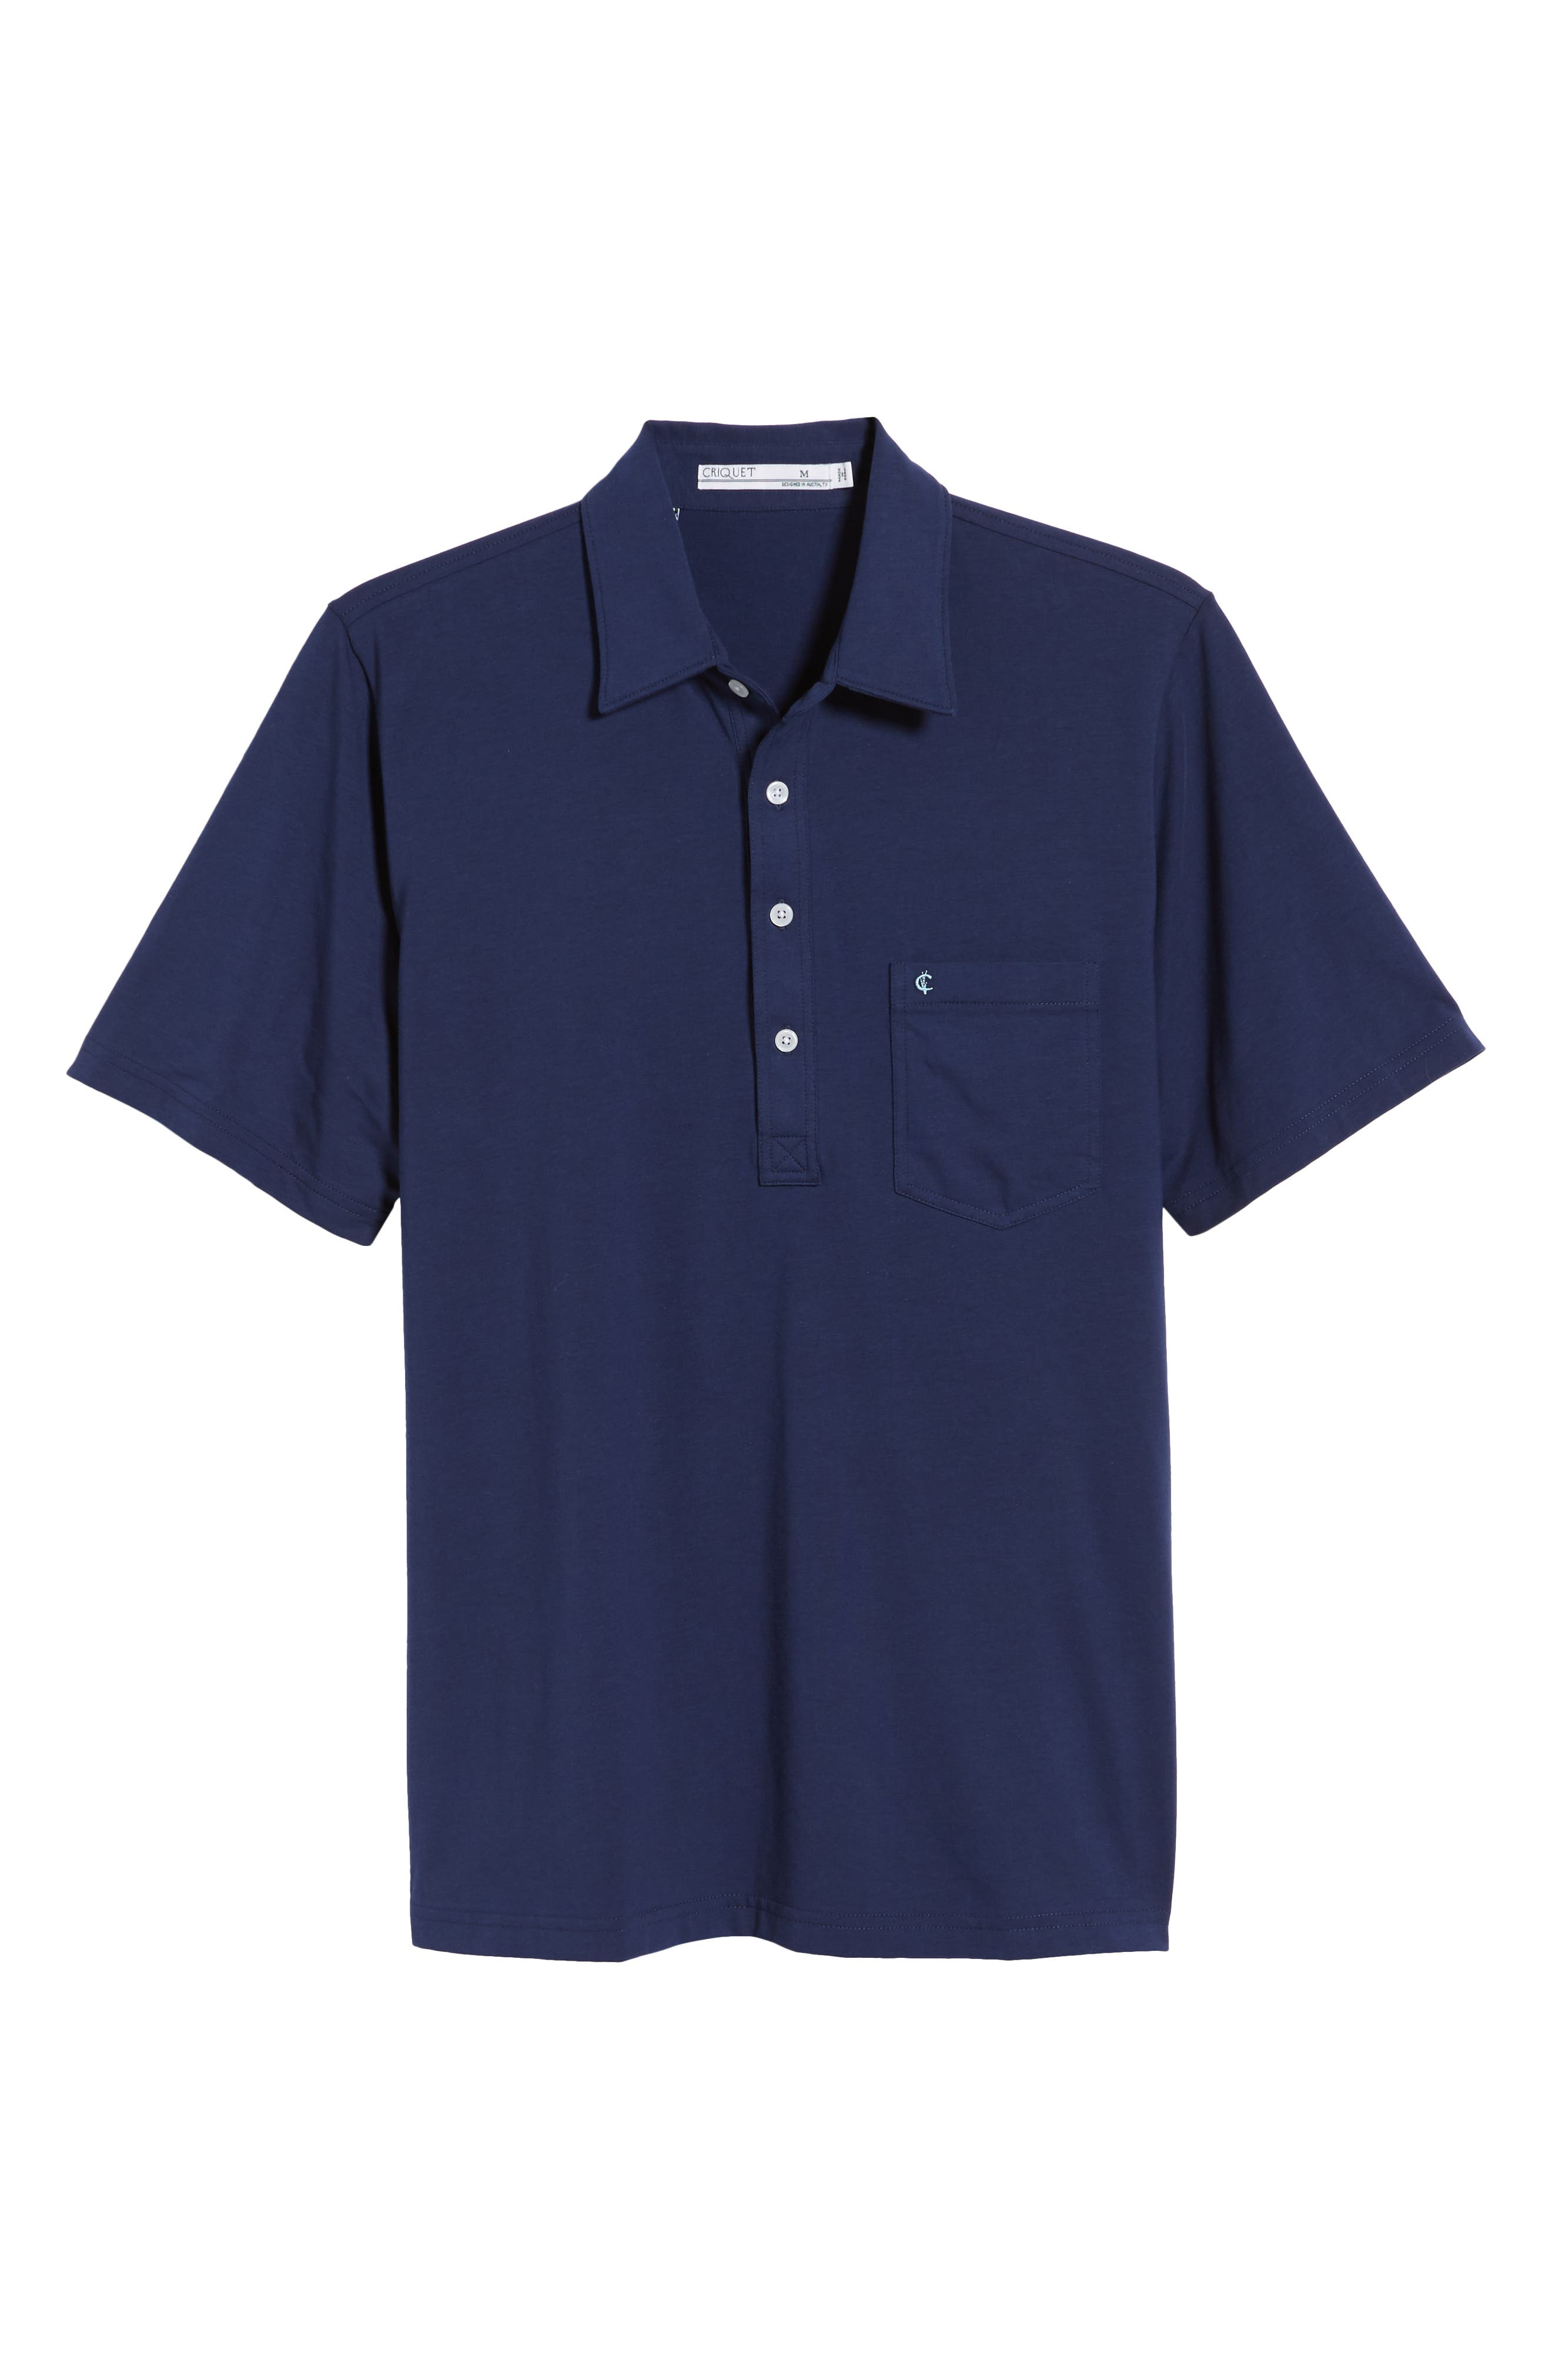 CRIQUET, Players Stretch Jersey Polo, Alternate thumbnail 6, color, NAVY